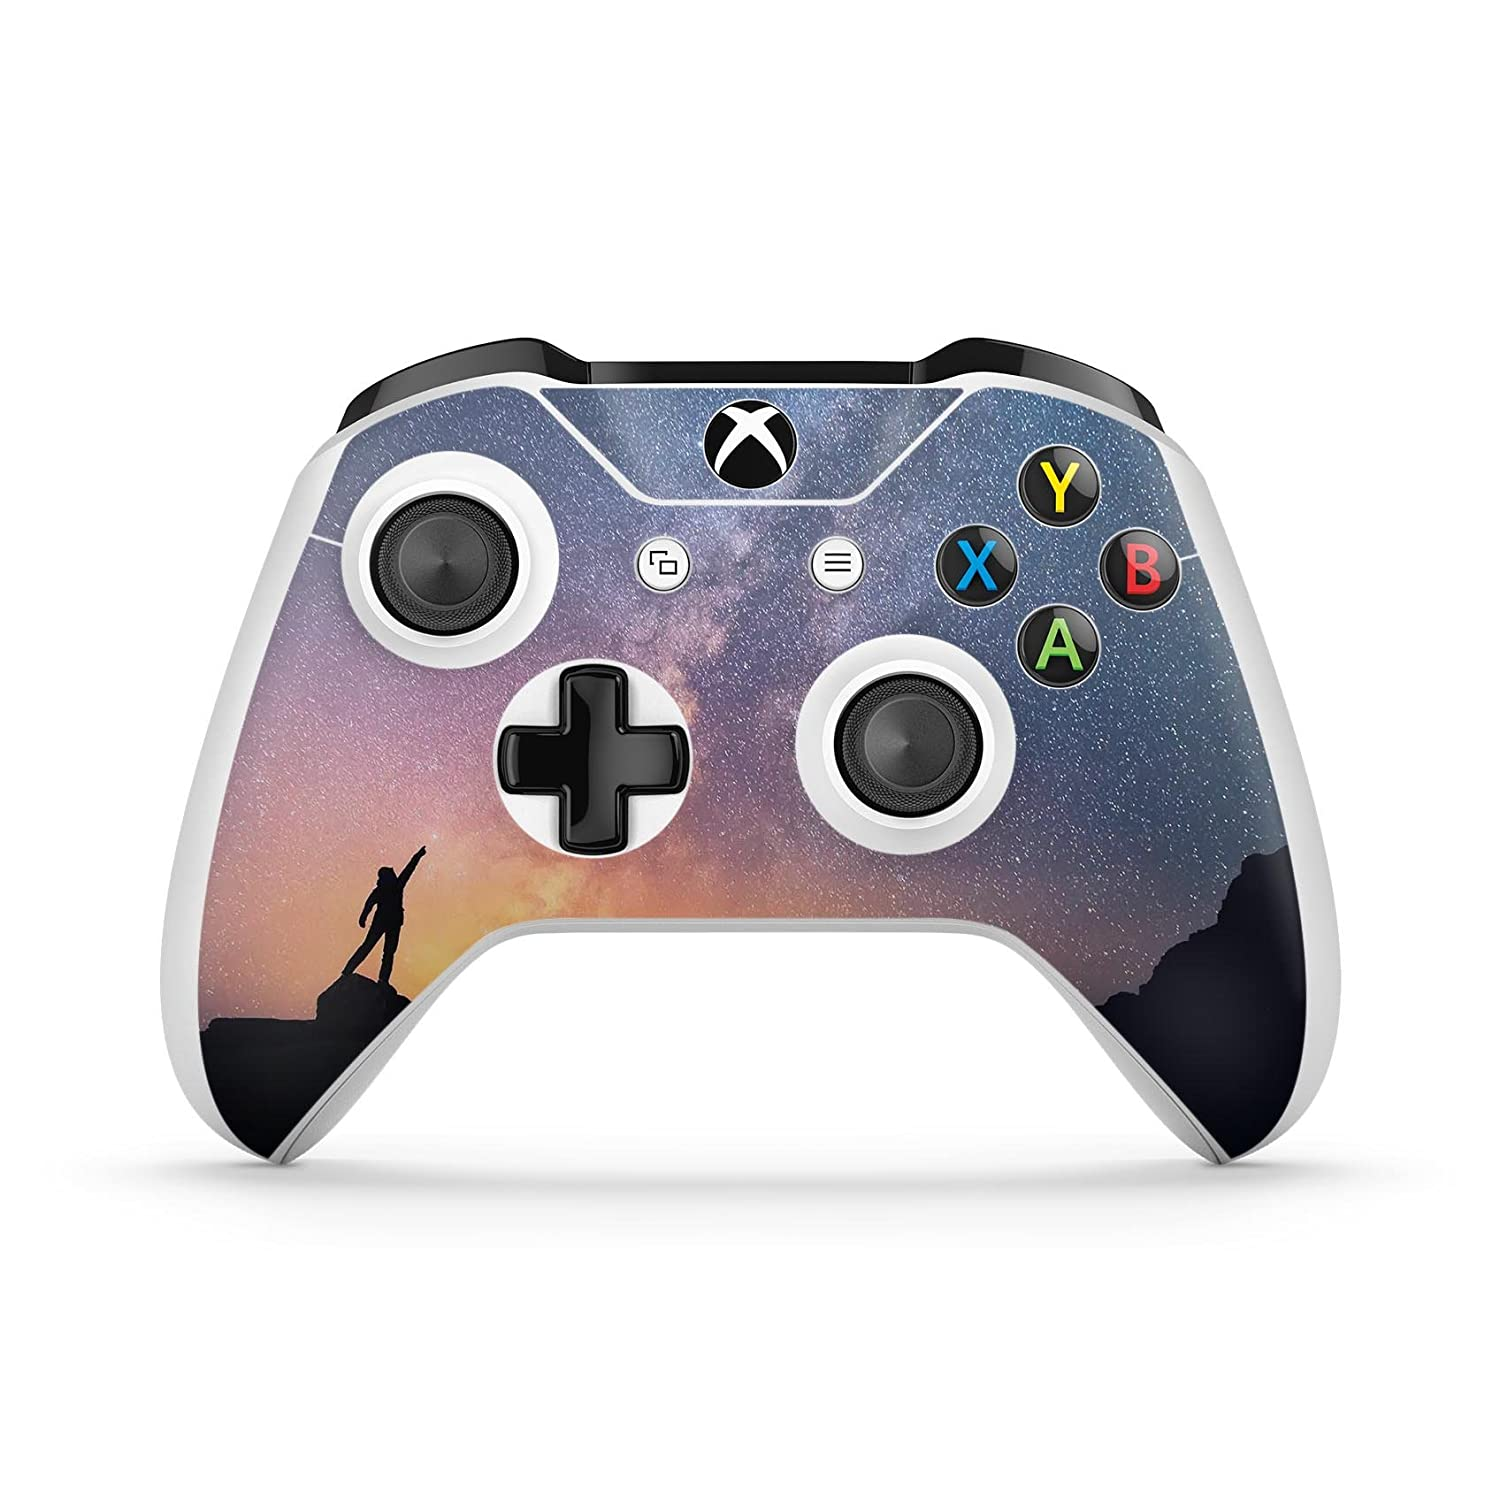 Reach for the Stars - Protective Vinyl DesignSkinz Decal Sticker Skin-Kit for the Microsoft Xbox ONE / ONE S Controller